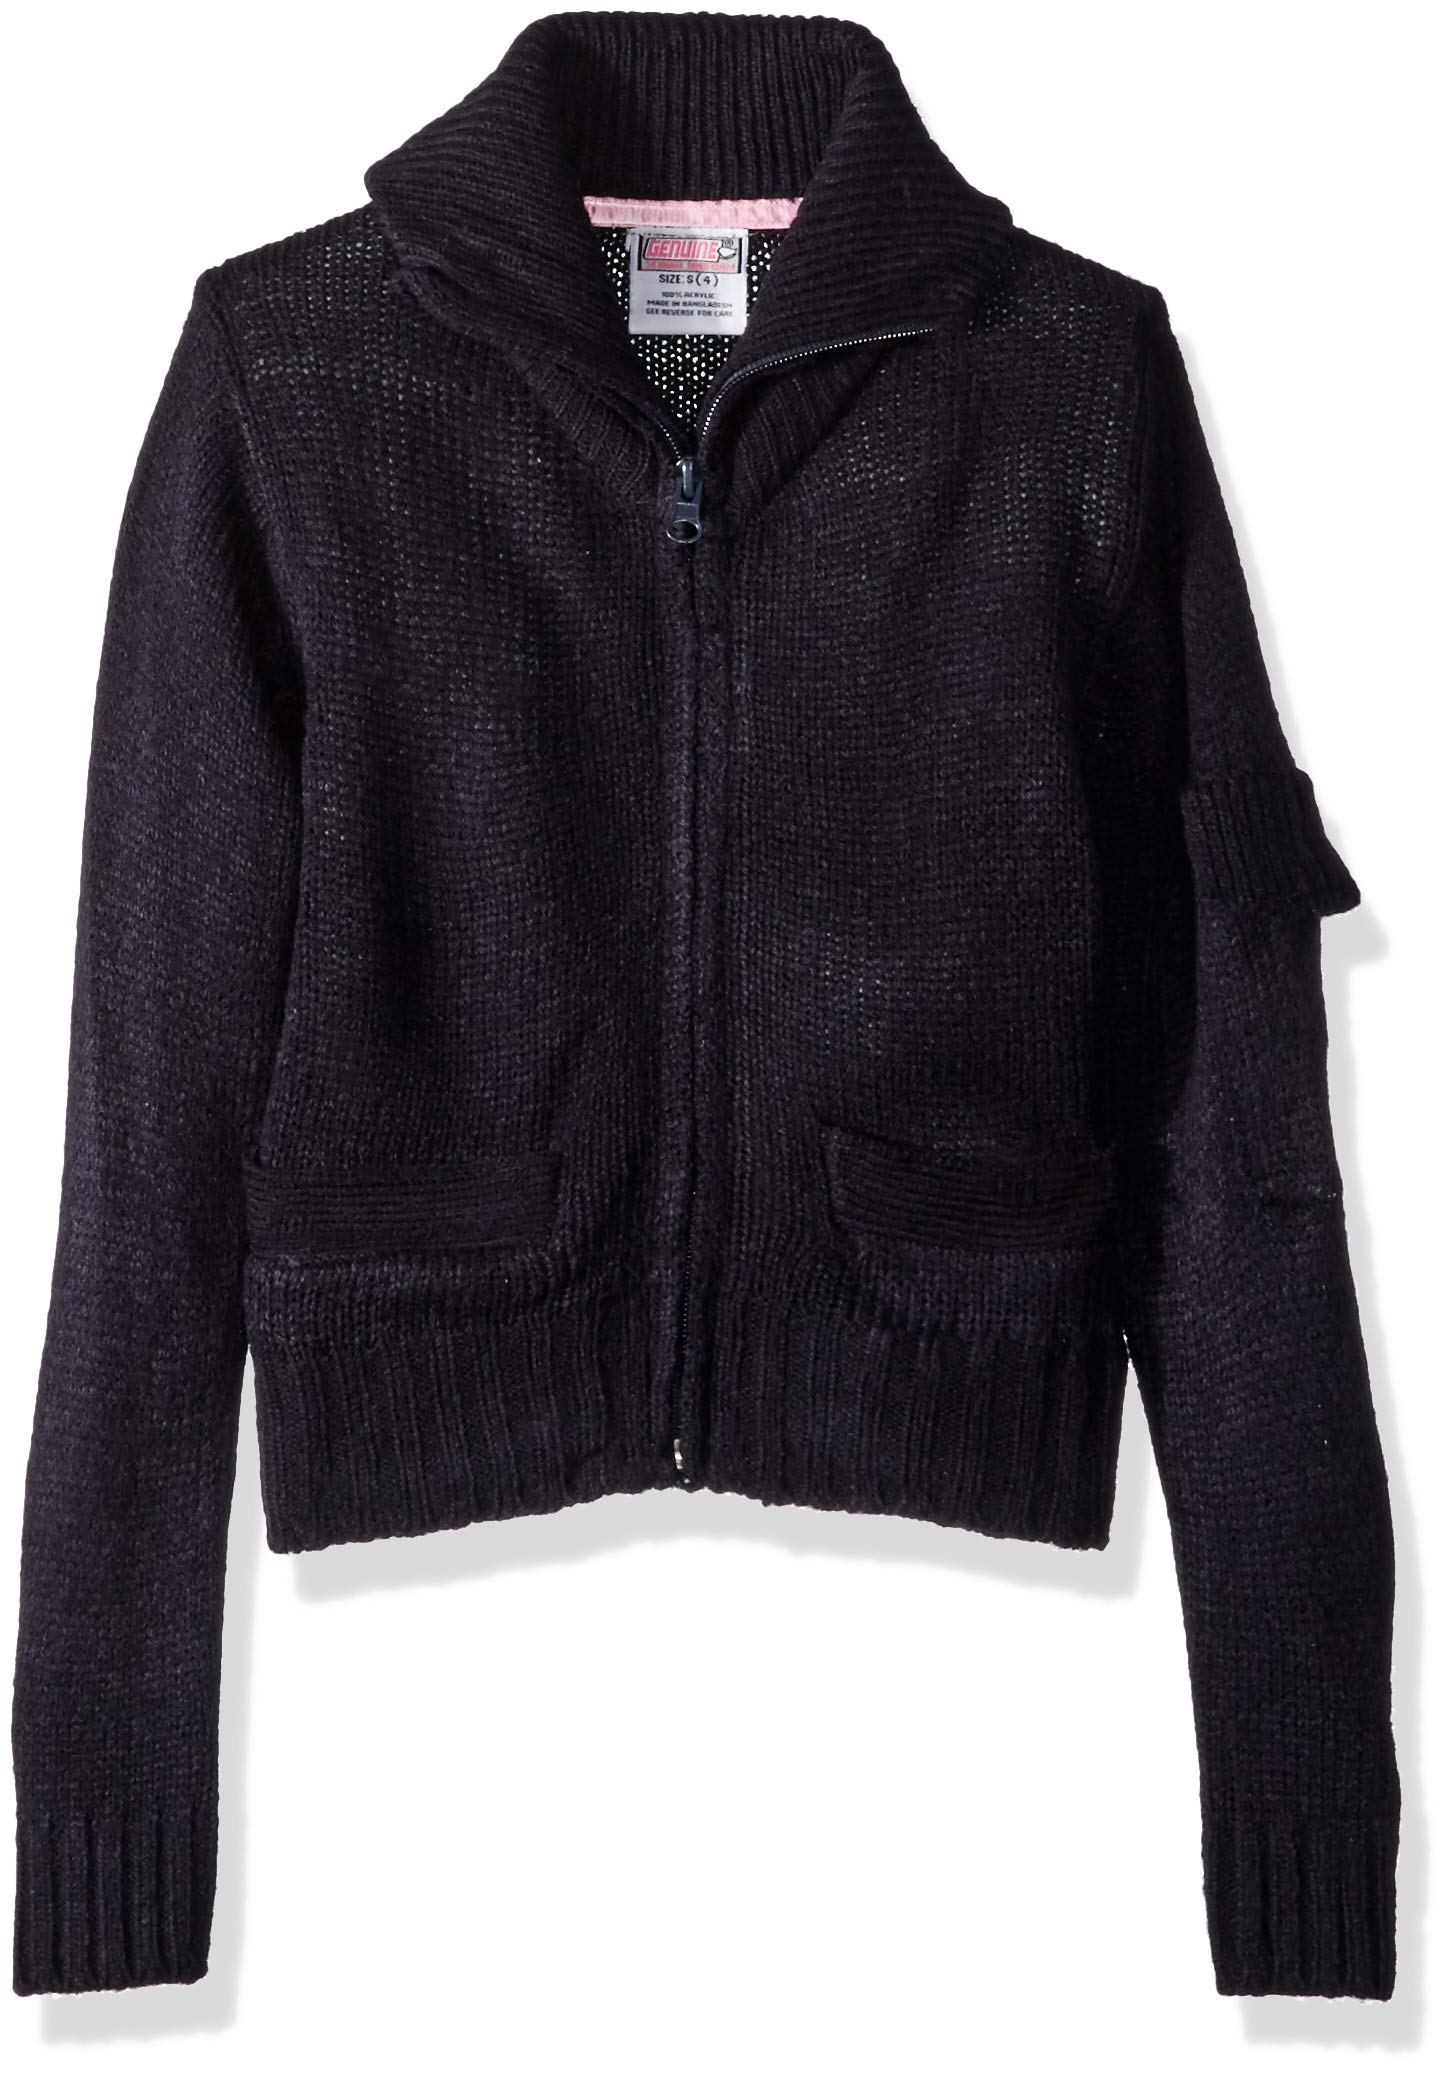 Genuine Girls' Little Zip Front Mock Neck Cardigan Sweater with Pocket on Sleeve, Navy, 6X